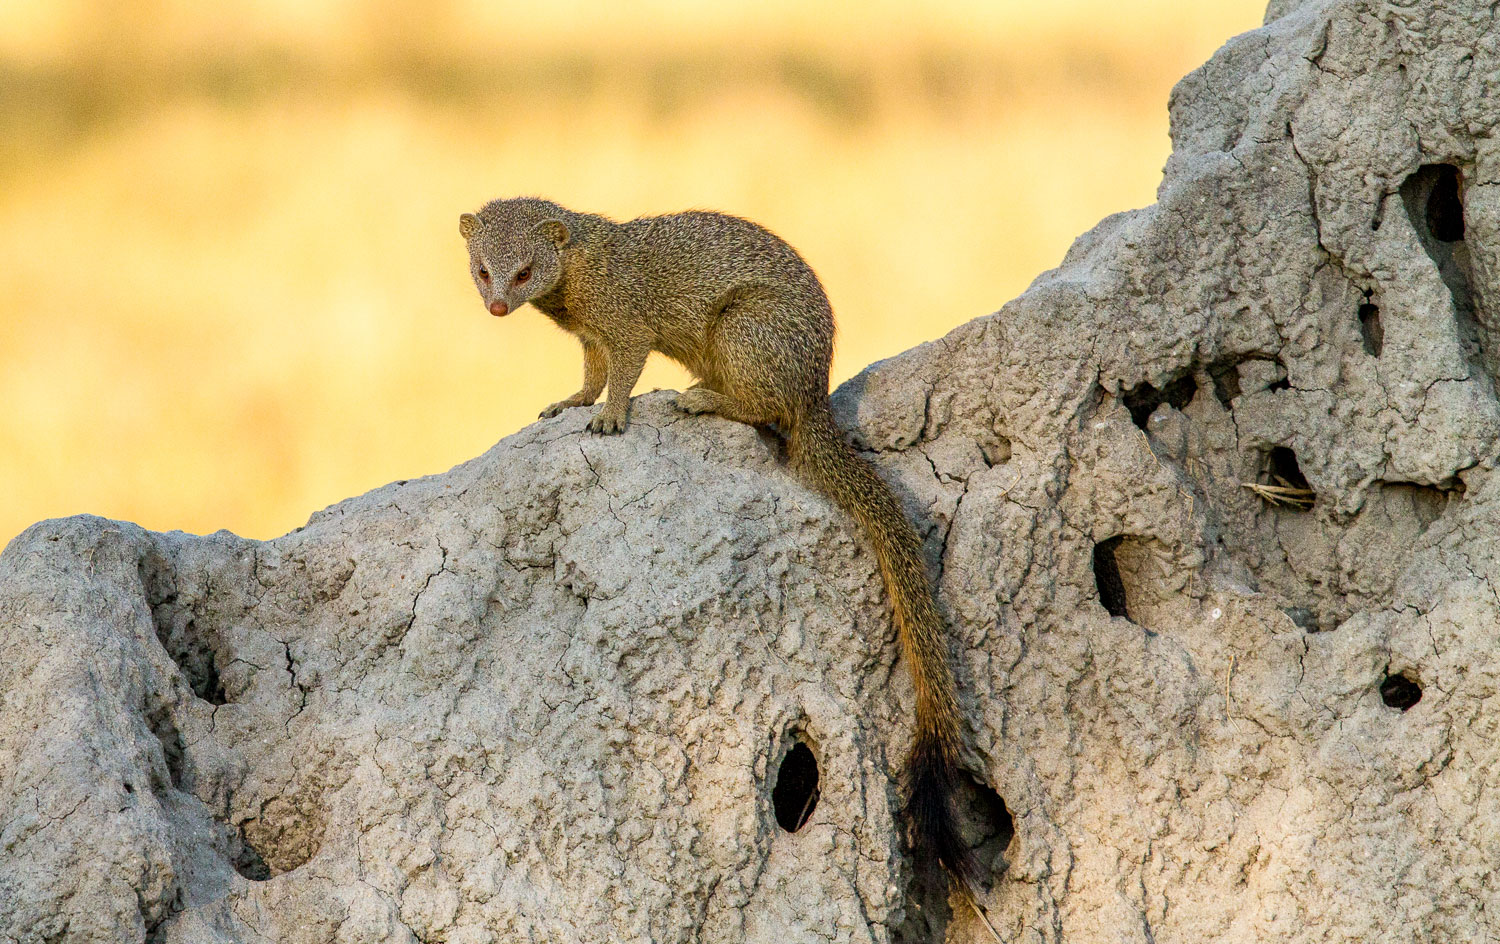 Mongoose on Termite Hill